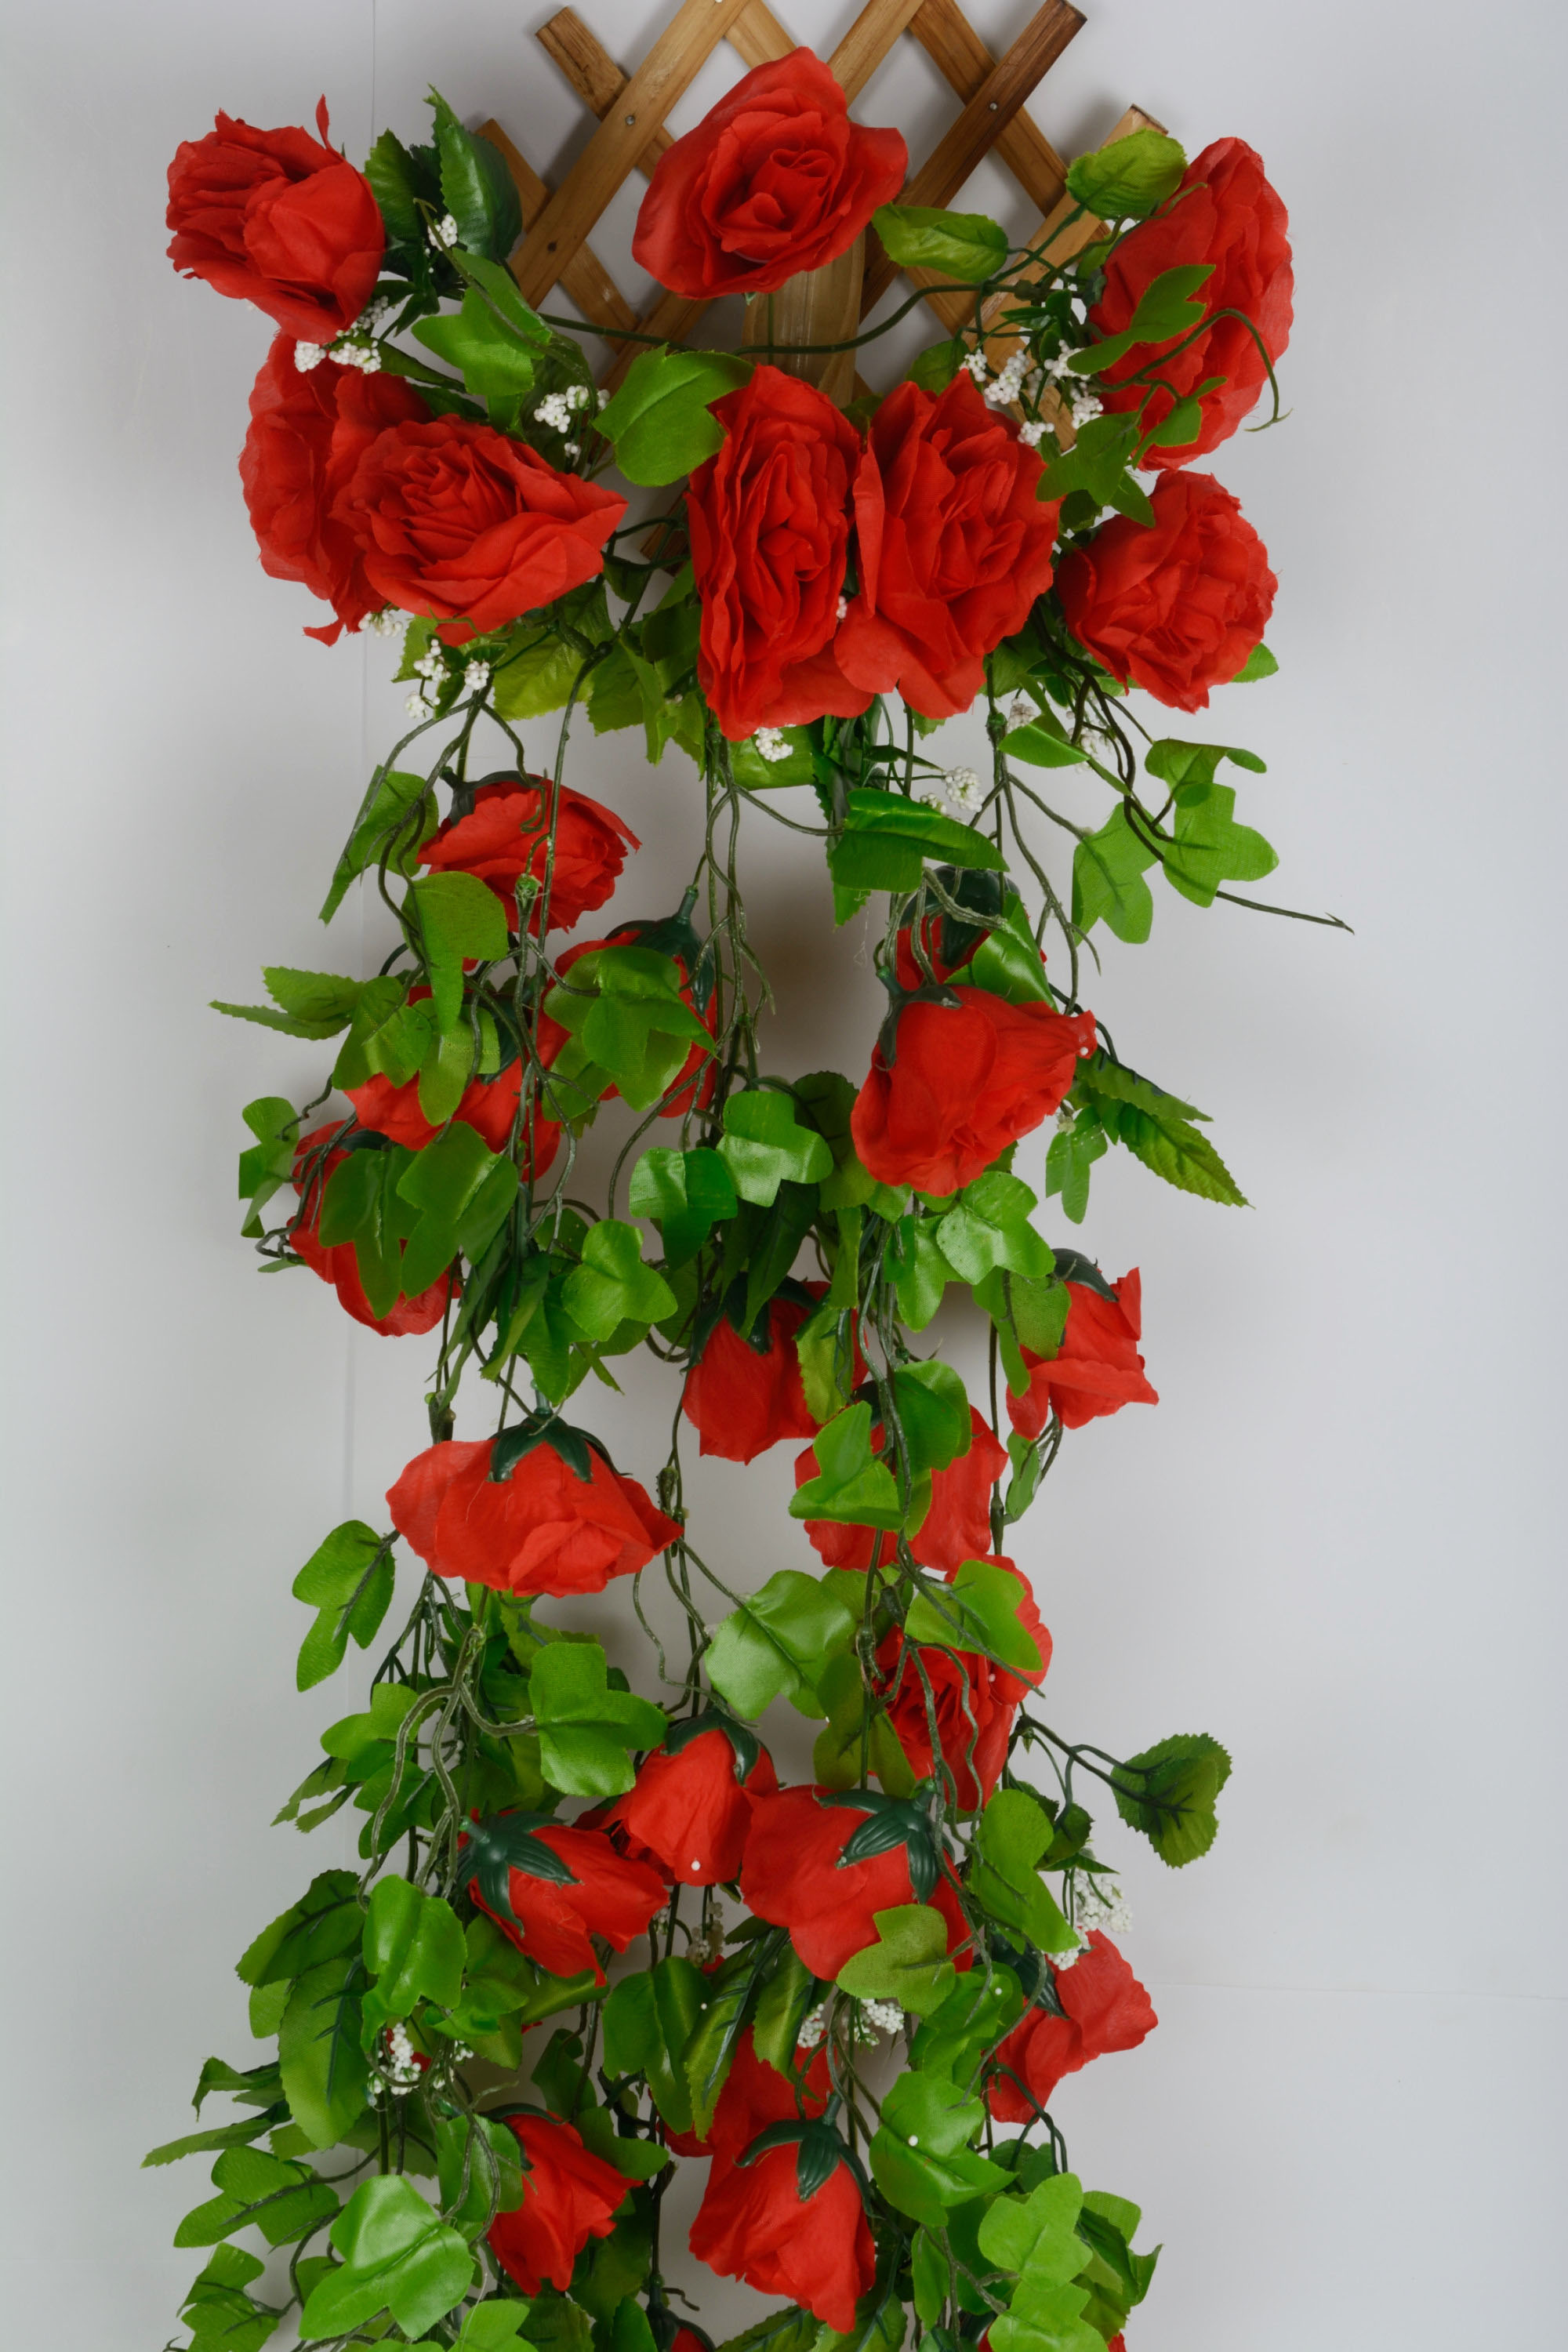 Artificial Rose Flowers Wall Hanging Foliage N53C2